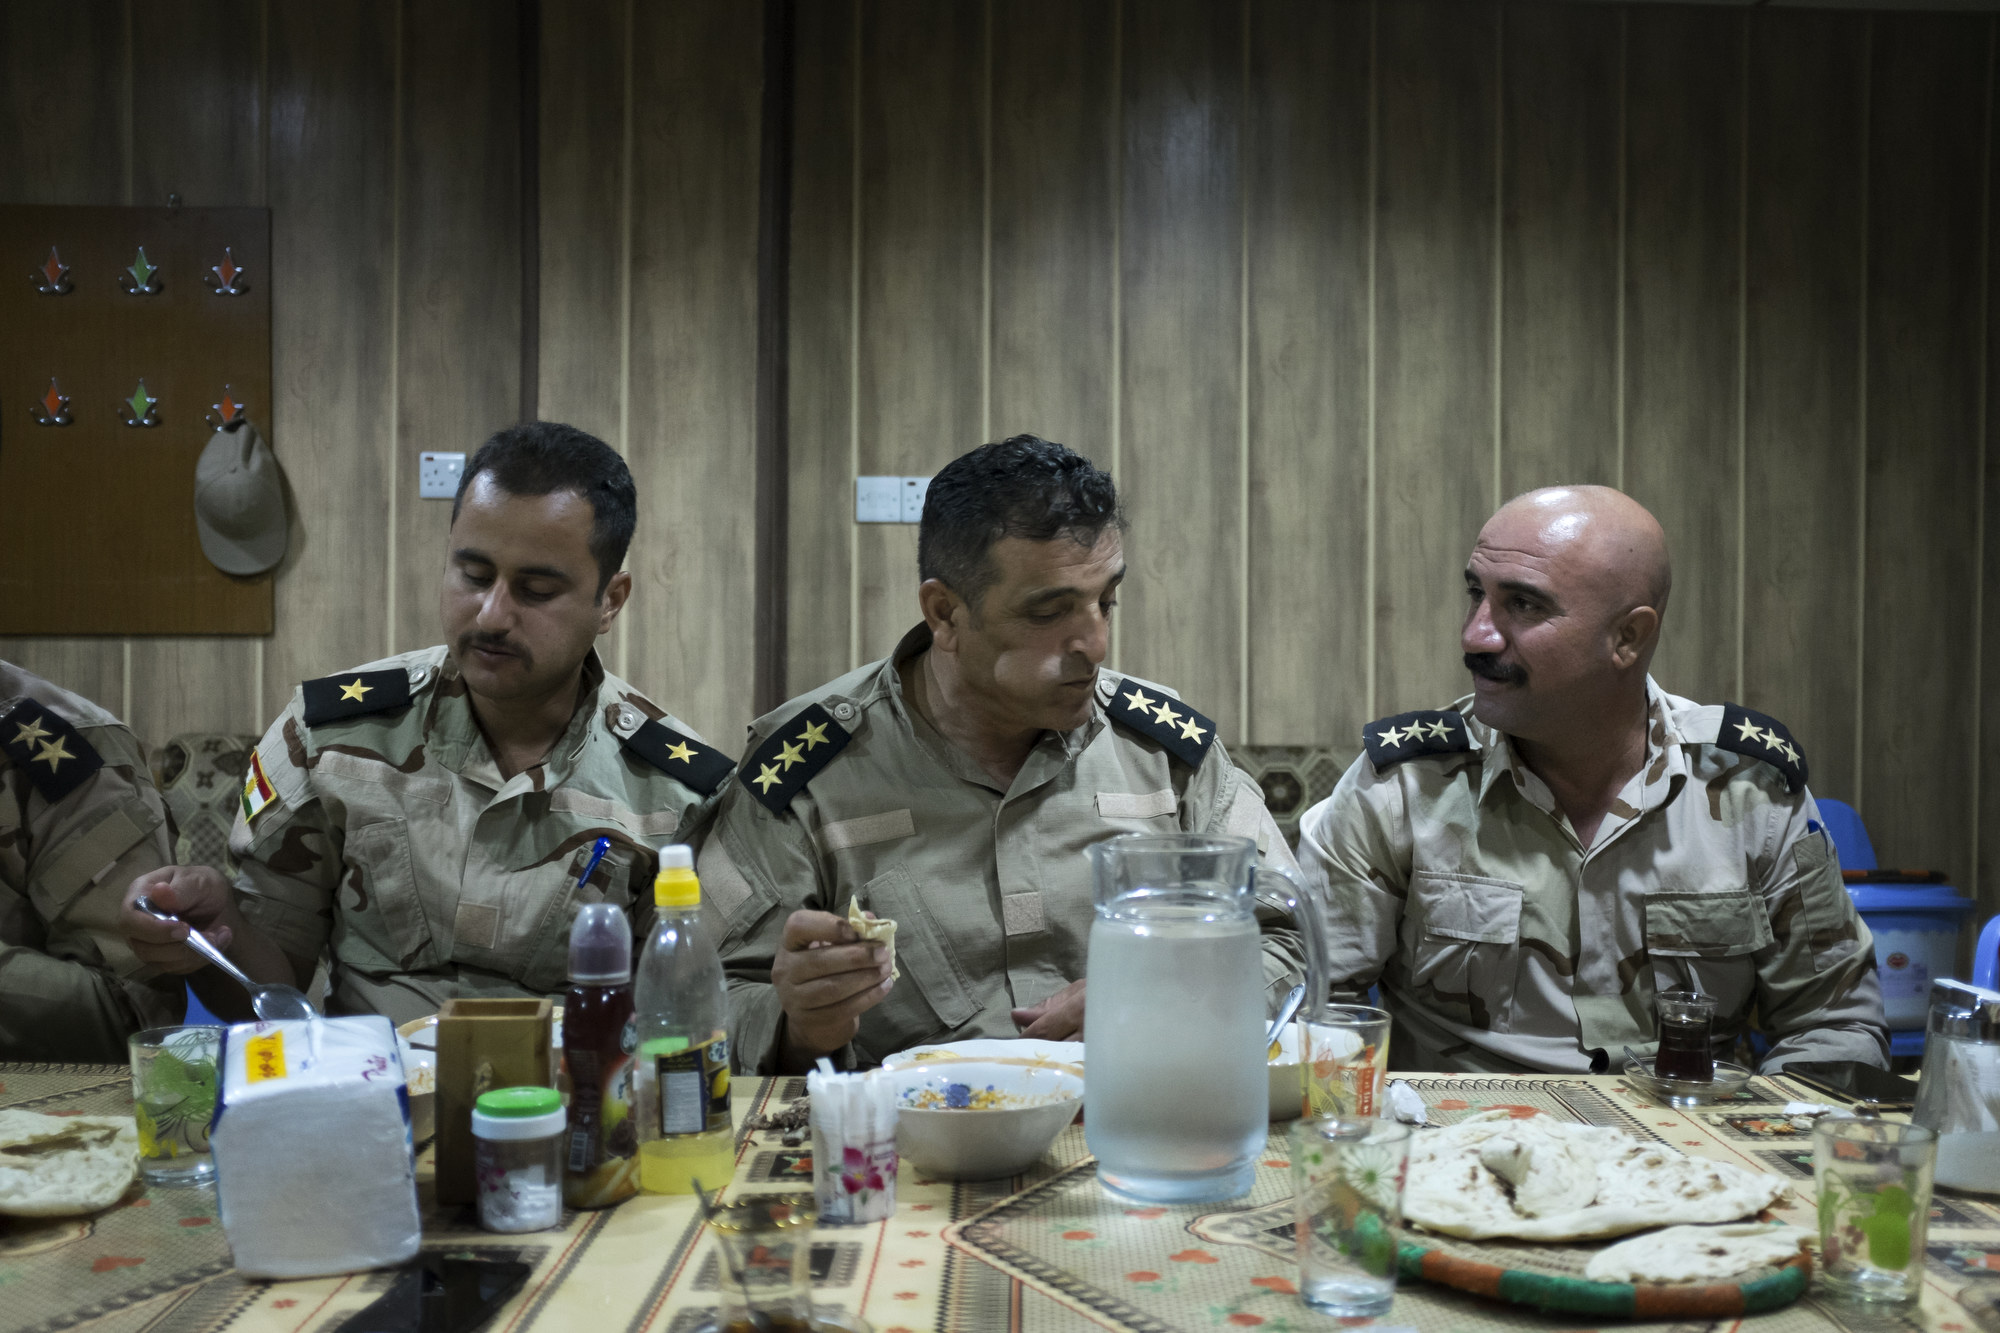 Officers eat an evening meal.